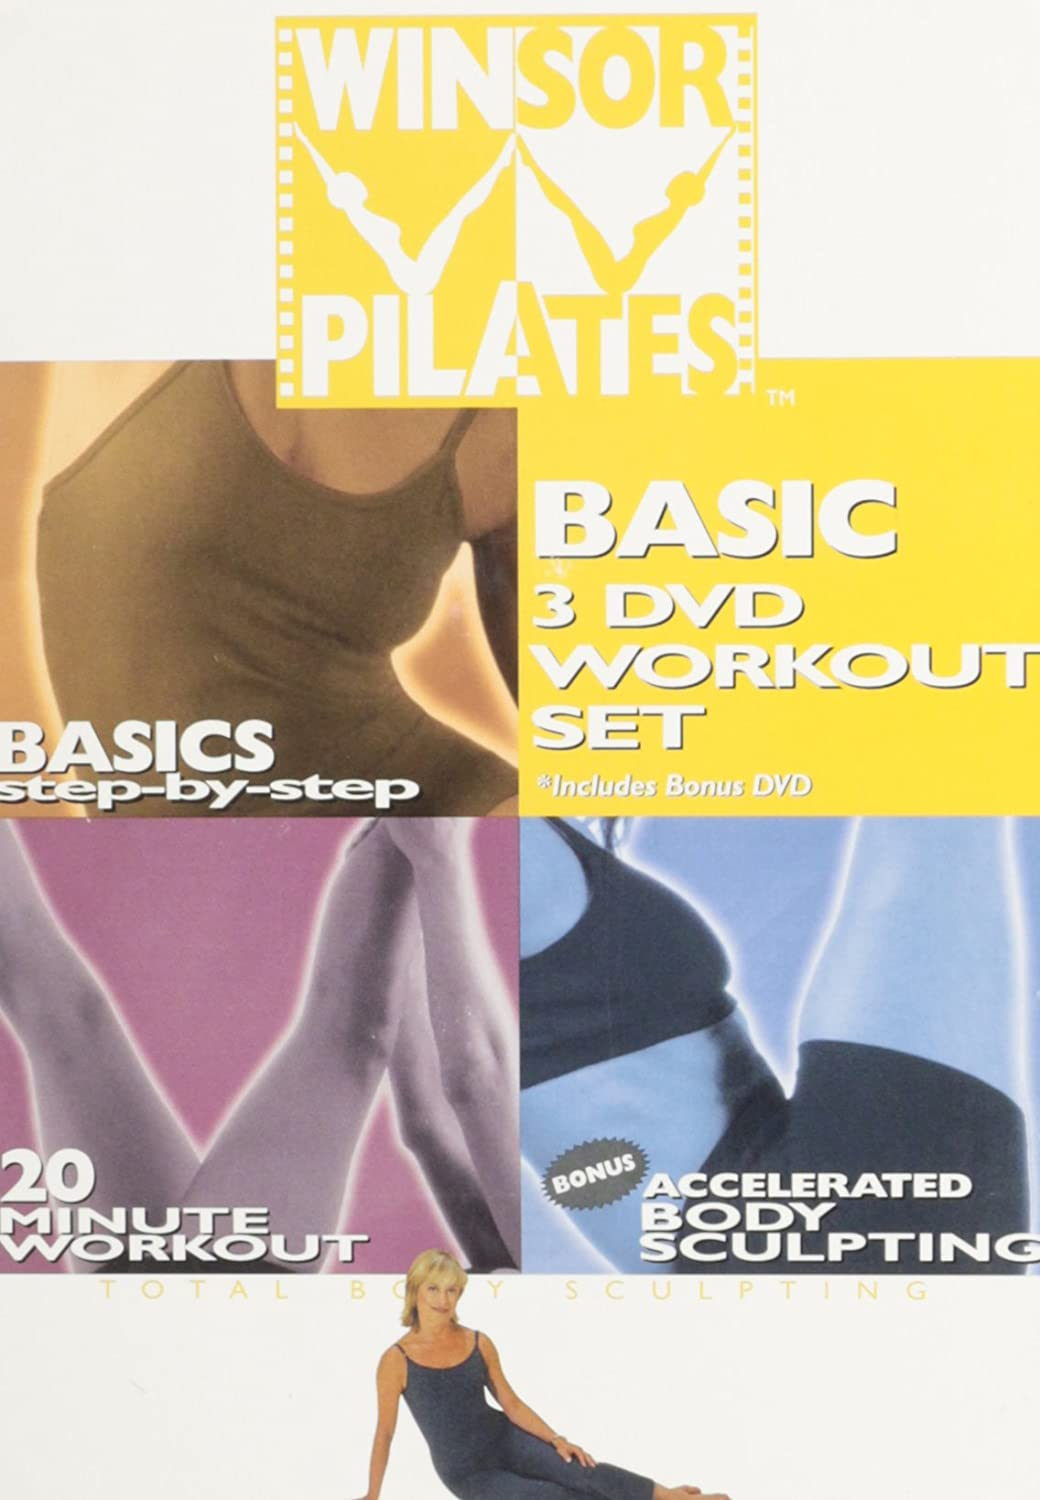 Winsor Pilates Basic 3 DVD Workout Set